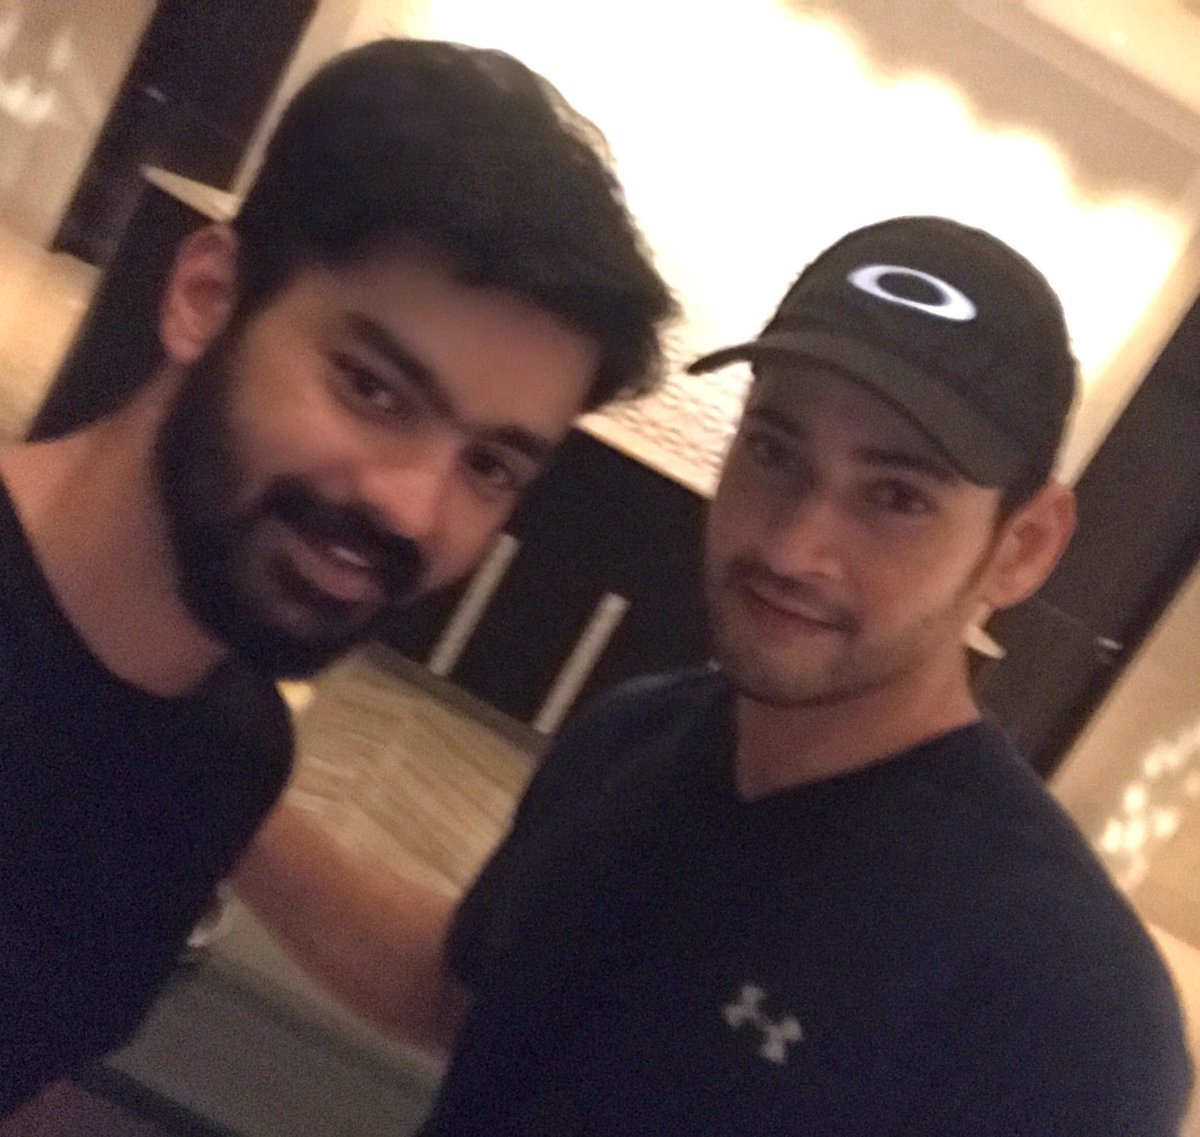 Look who's in town! The prince  @urstrulyMahesh